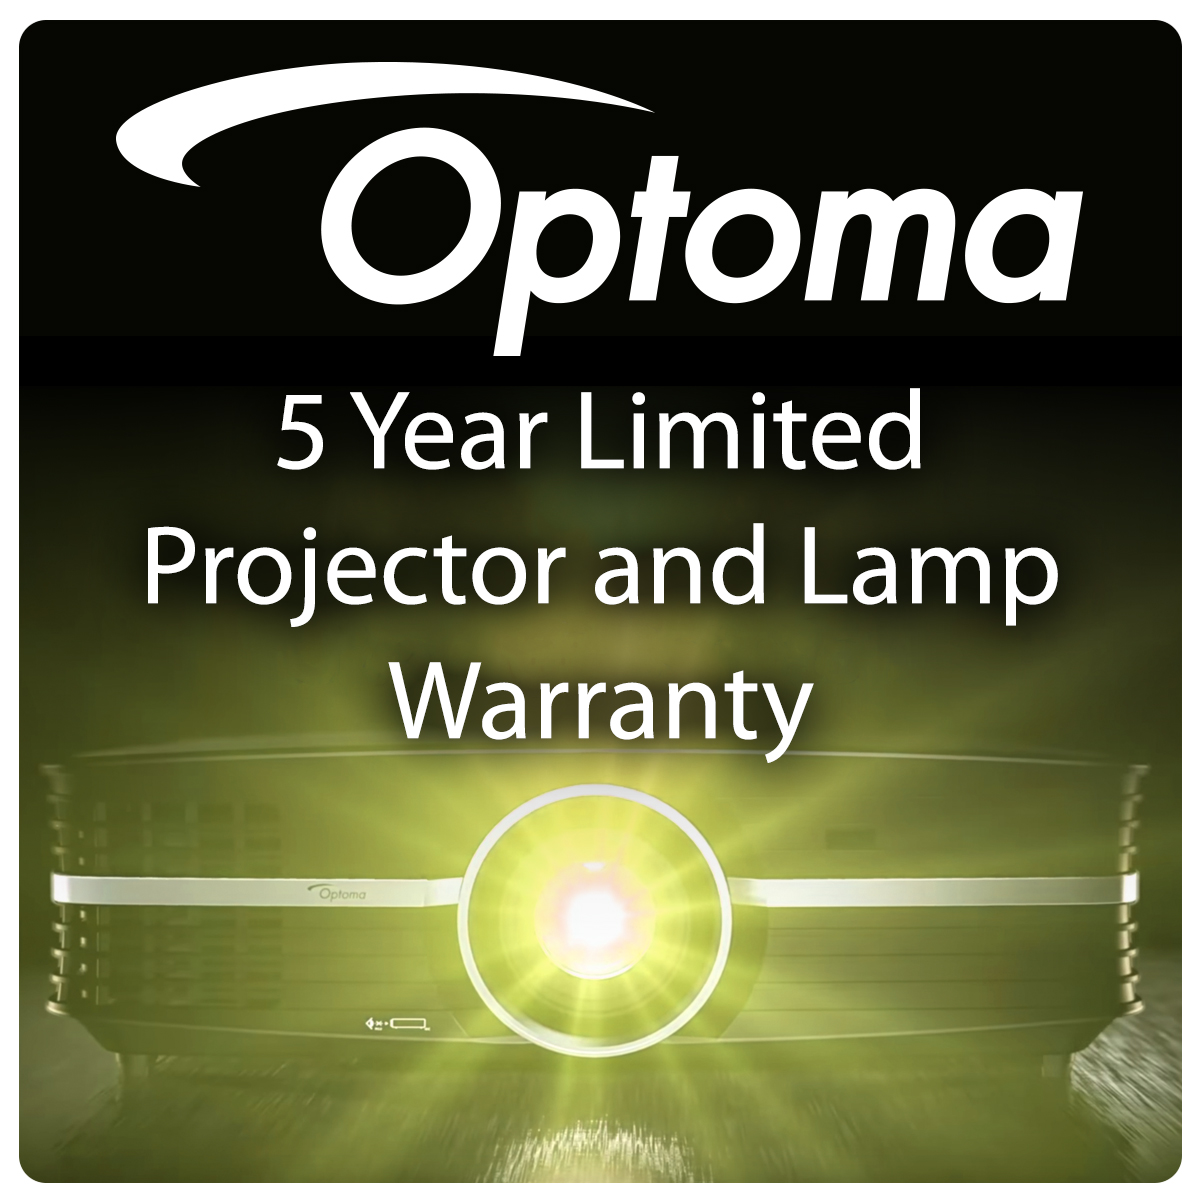 Optoma 5 Year Limited Projector and Lamp Warranty